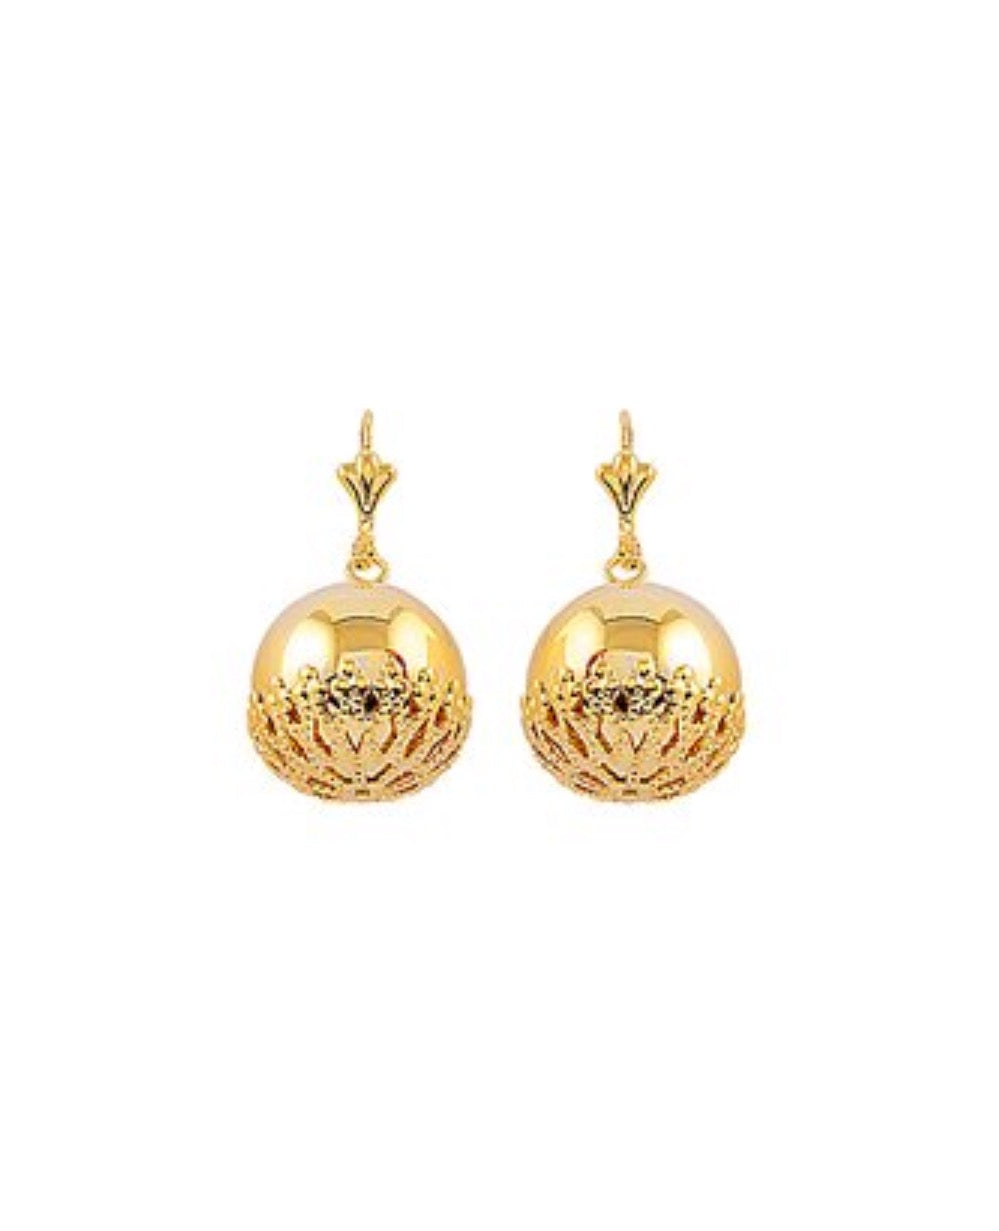 Earrings - Gold Sphere Drop